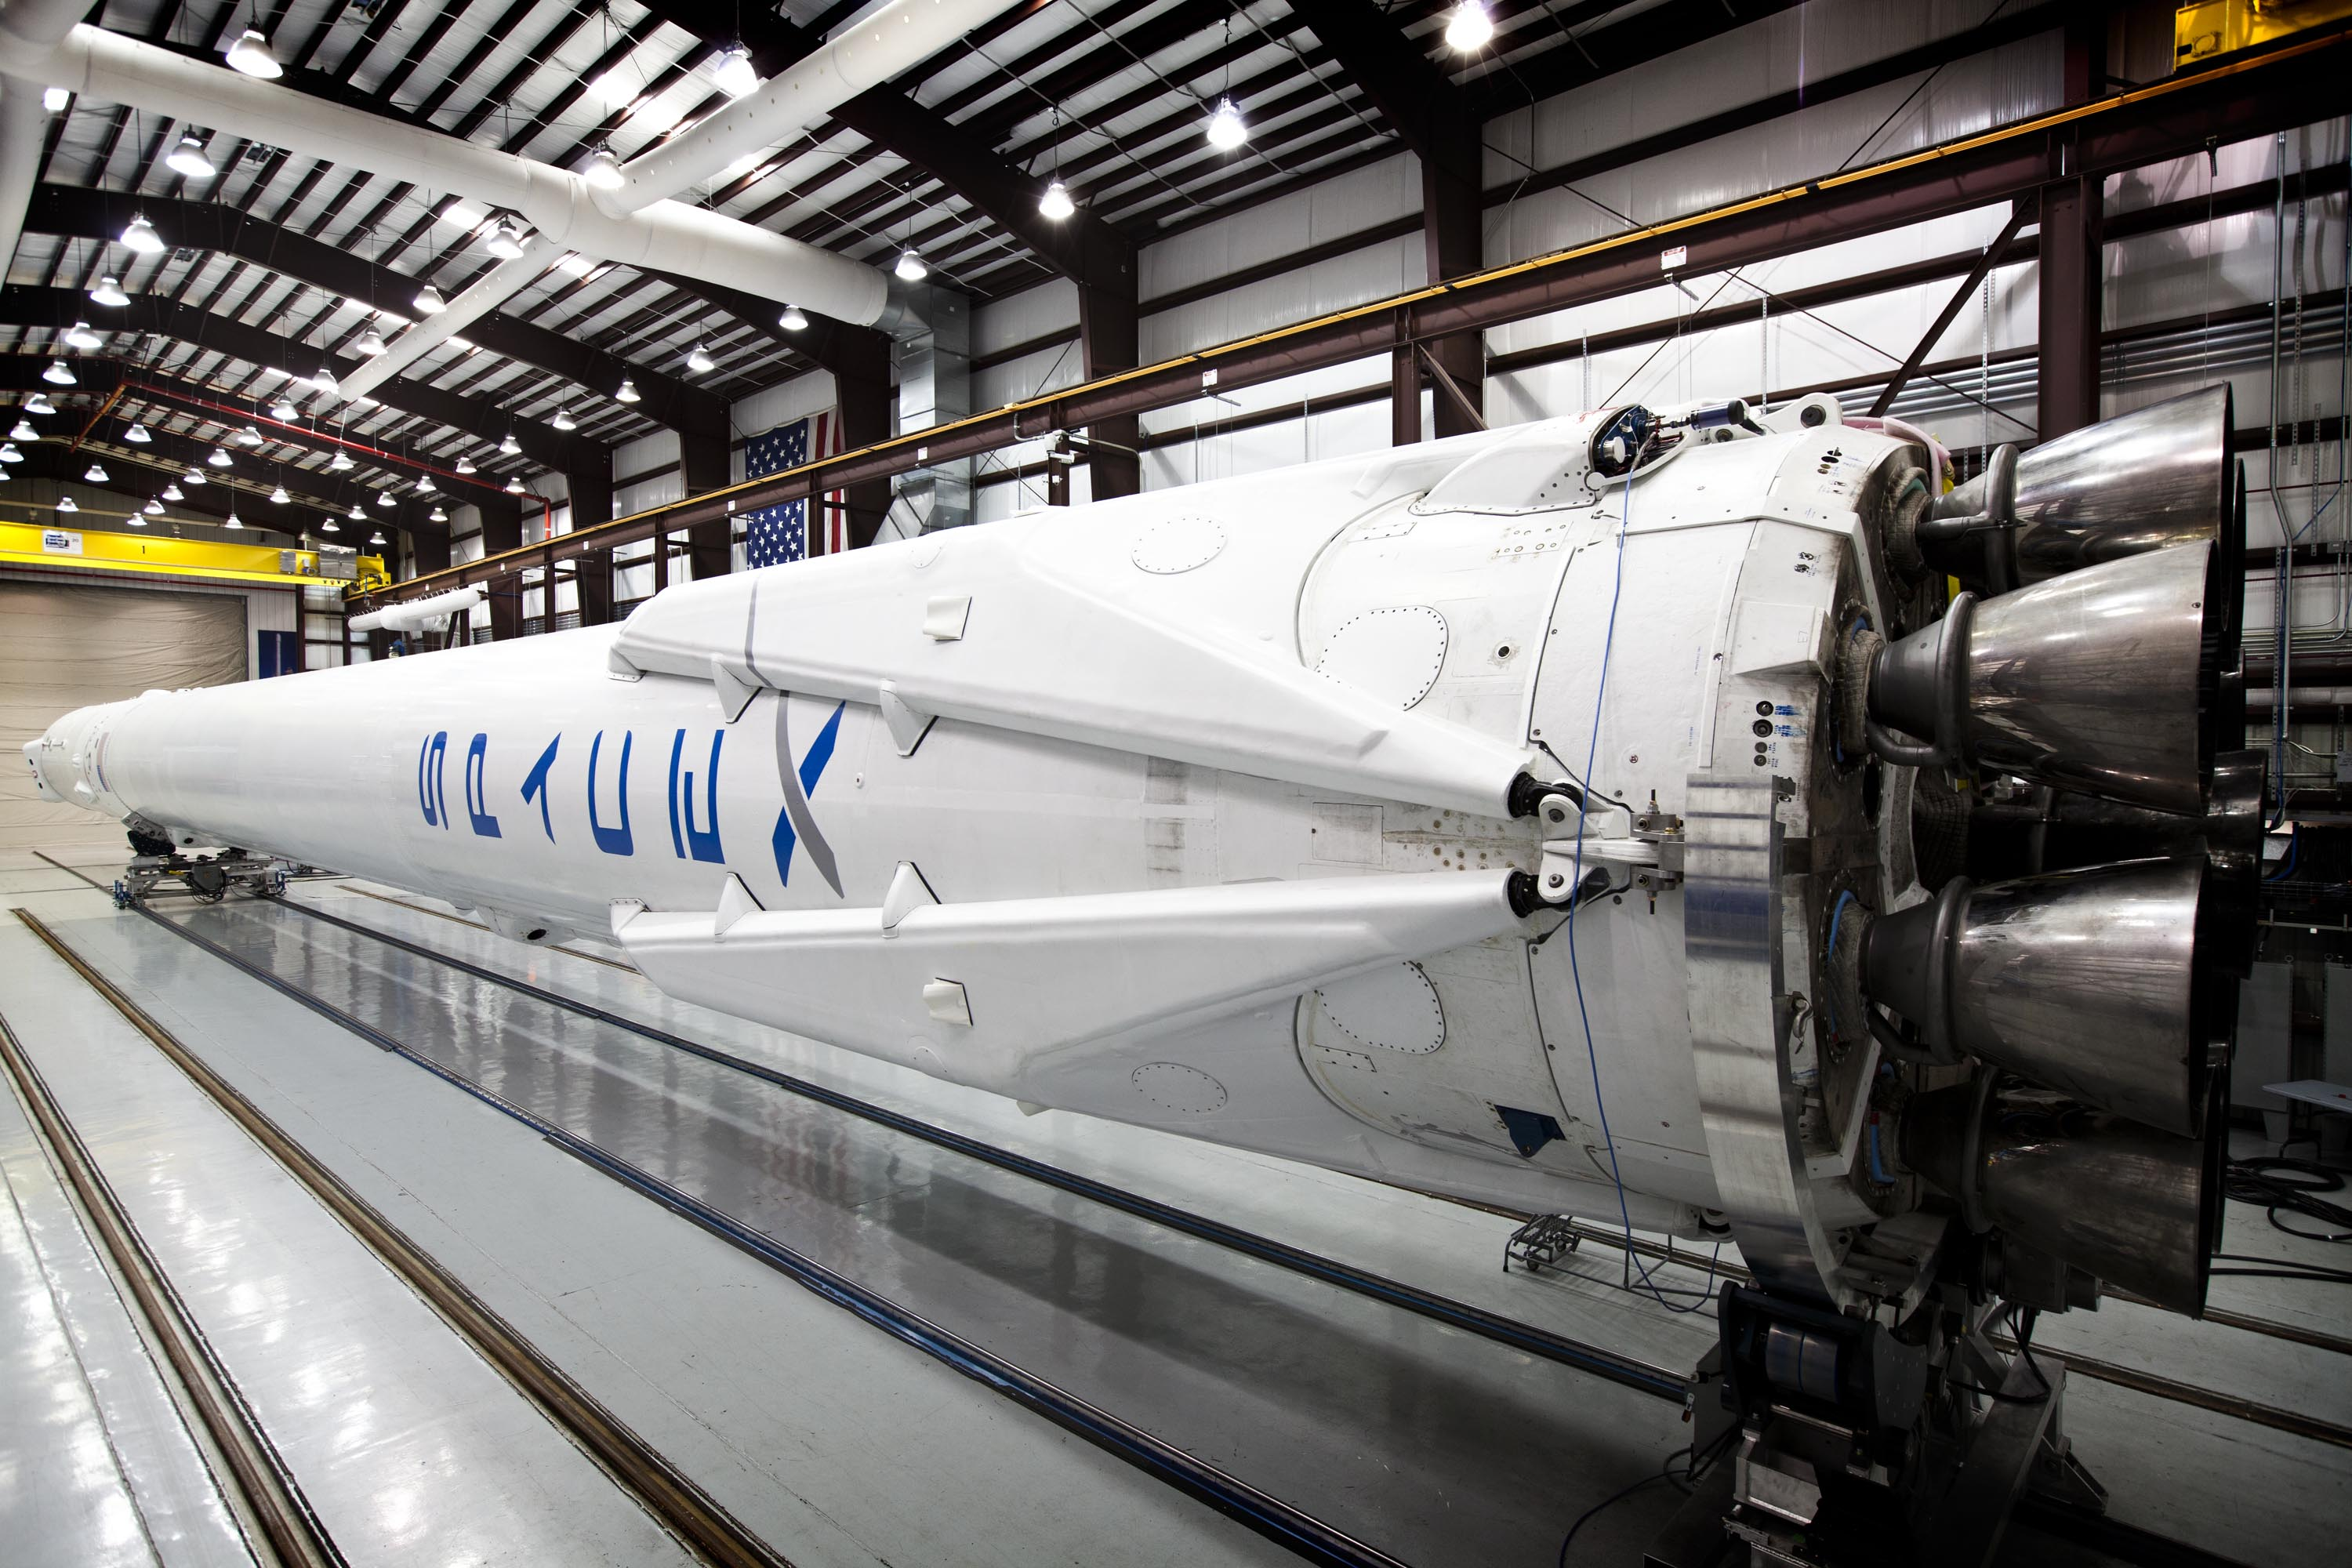 Falcon 9 in SpaceX's hangar with landing legs attached.